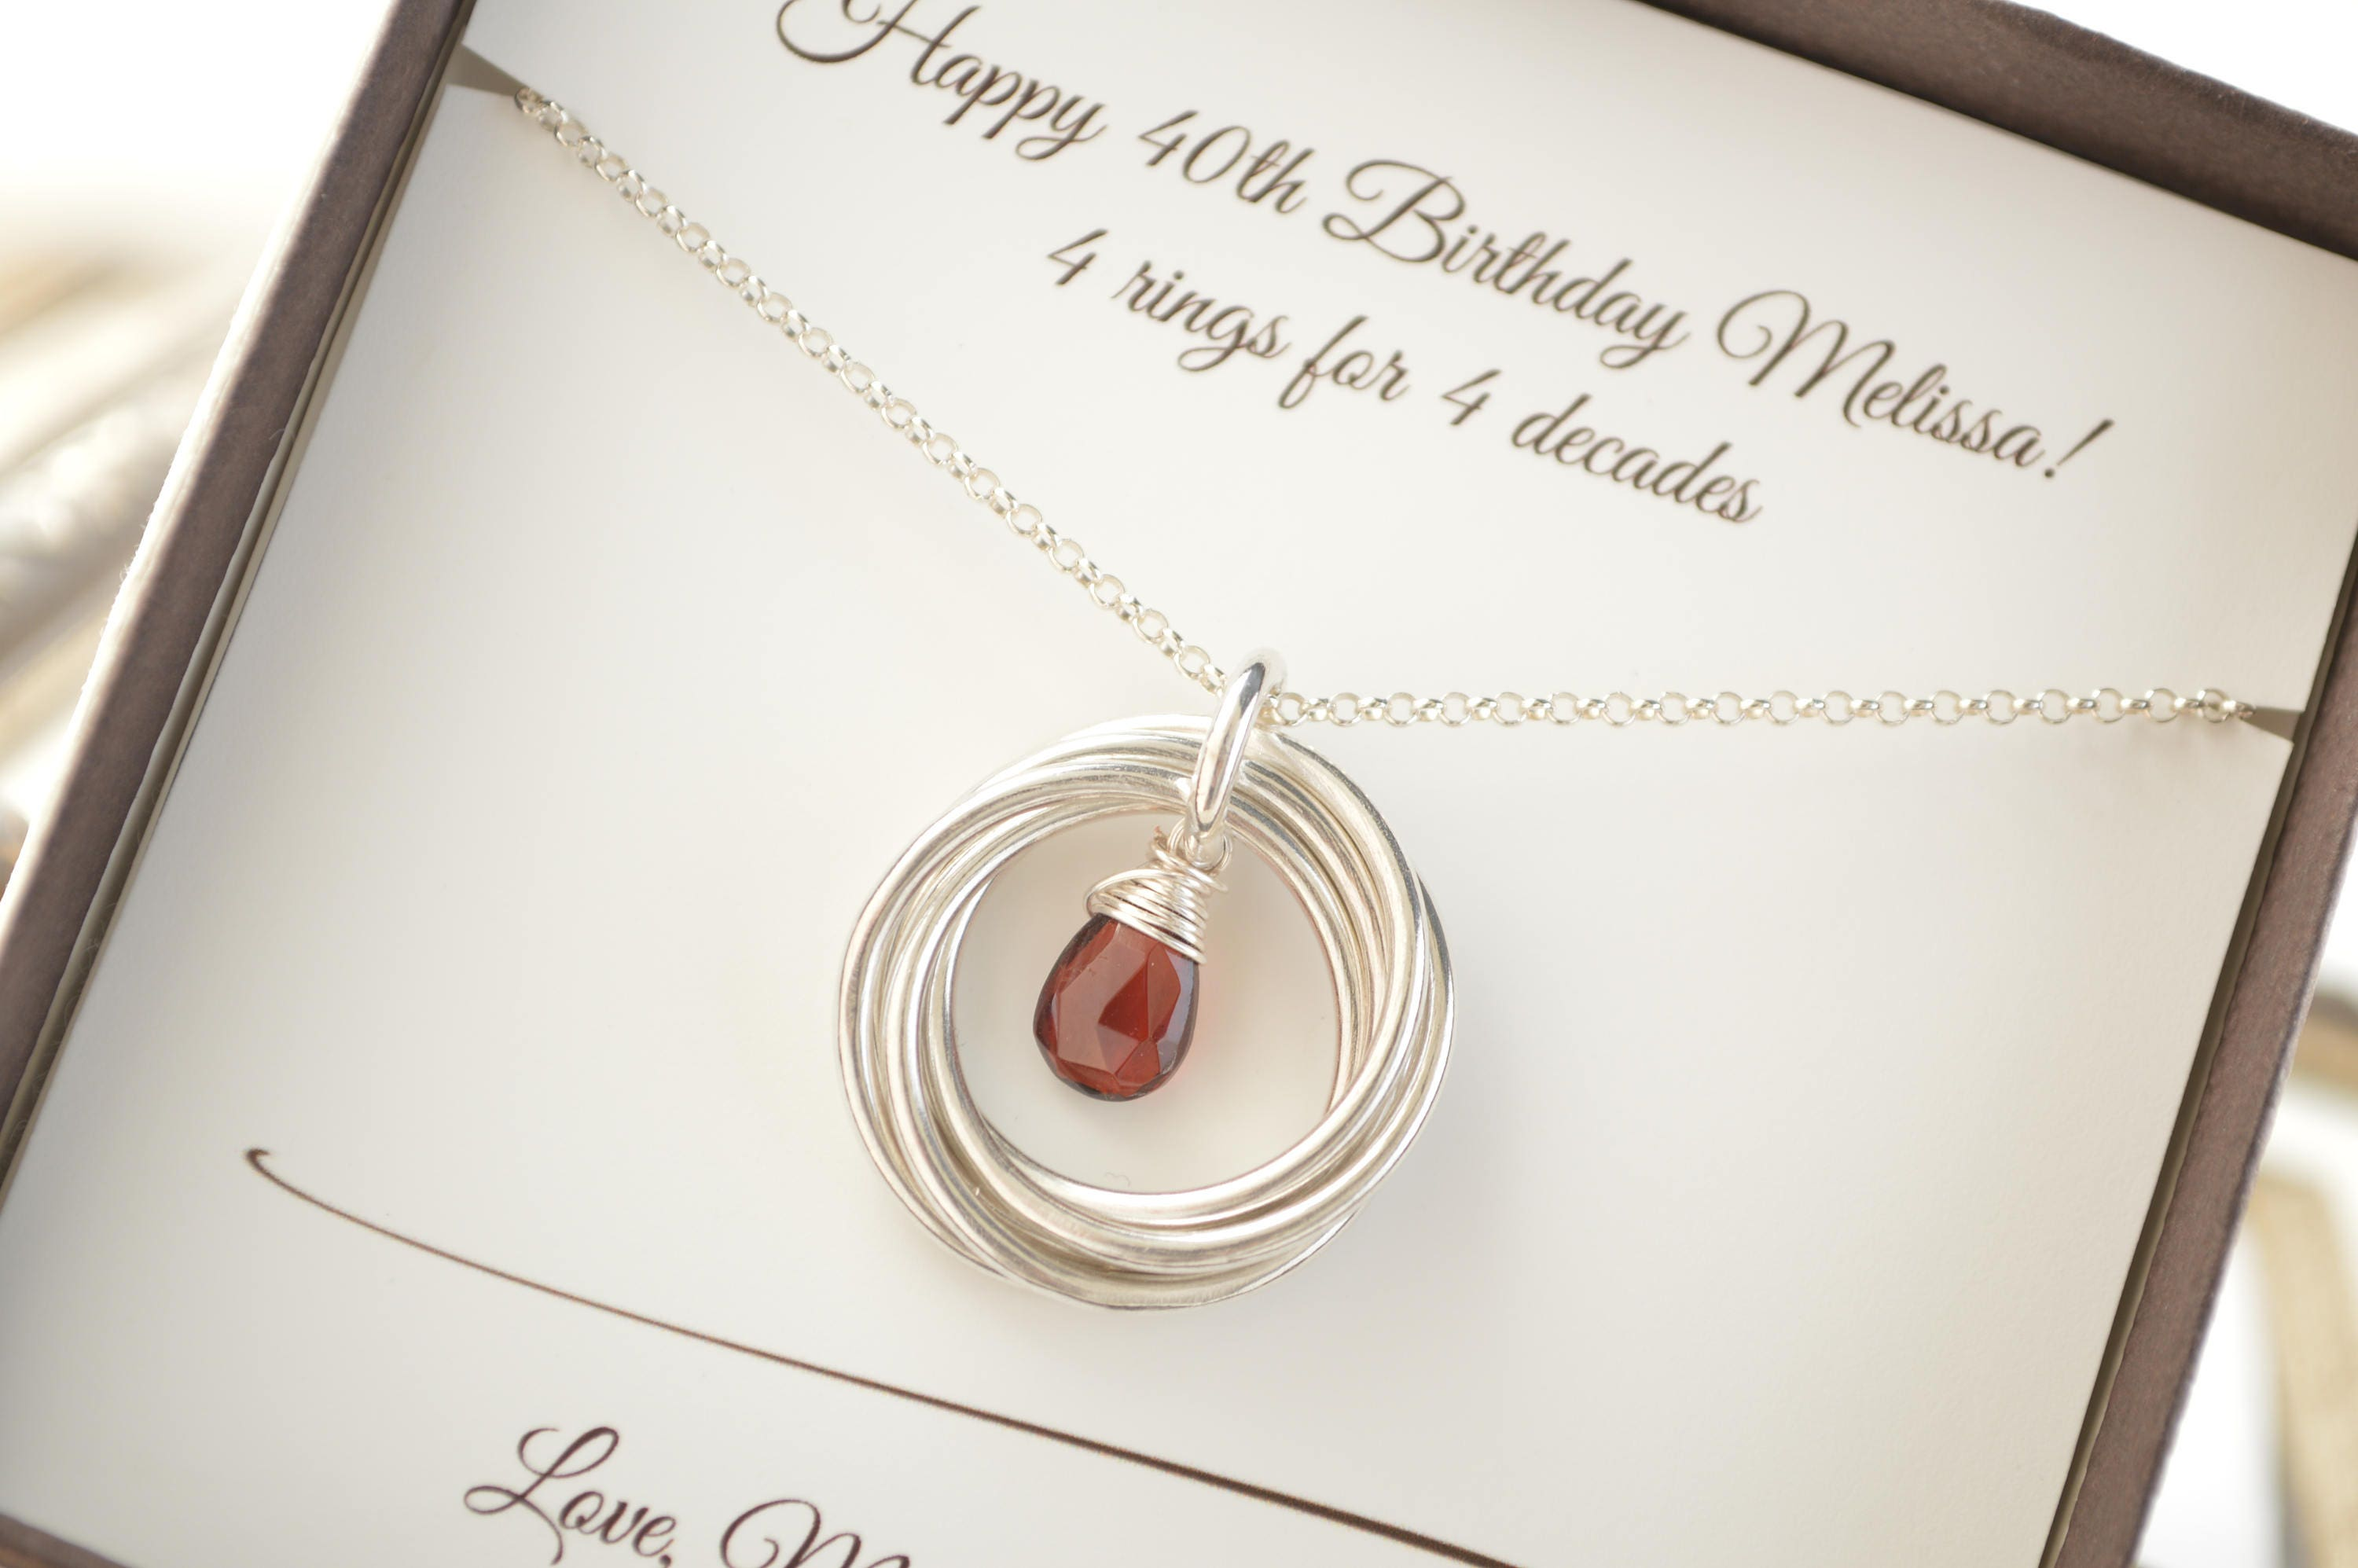 40th Wedding Anniversary Gifts For Friends: 40th Birthday Gift For Women, 40th Birthday Jewelry